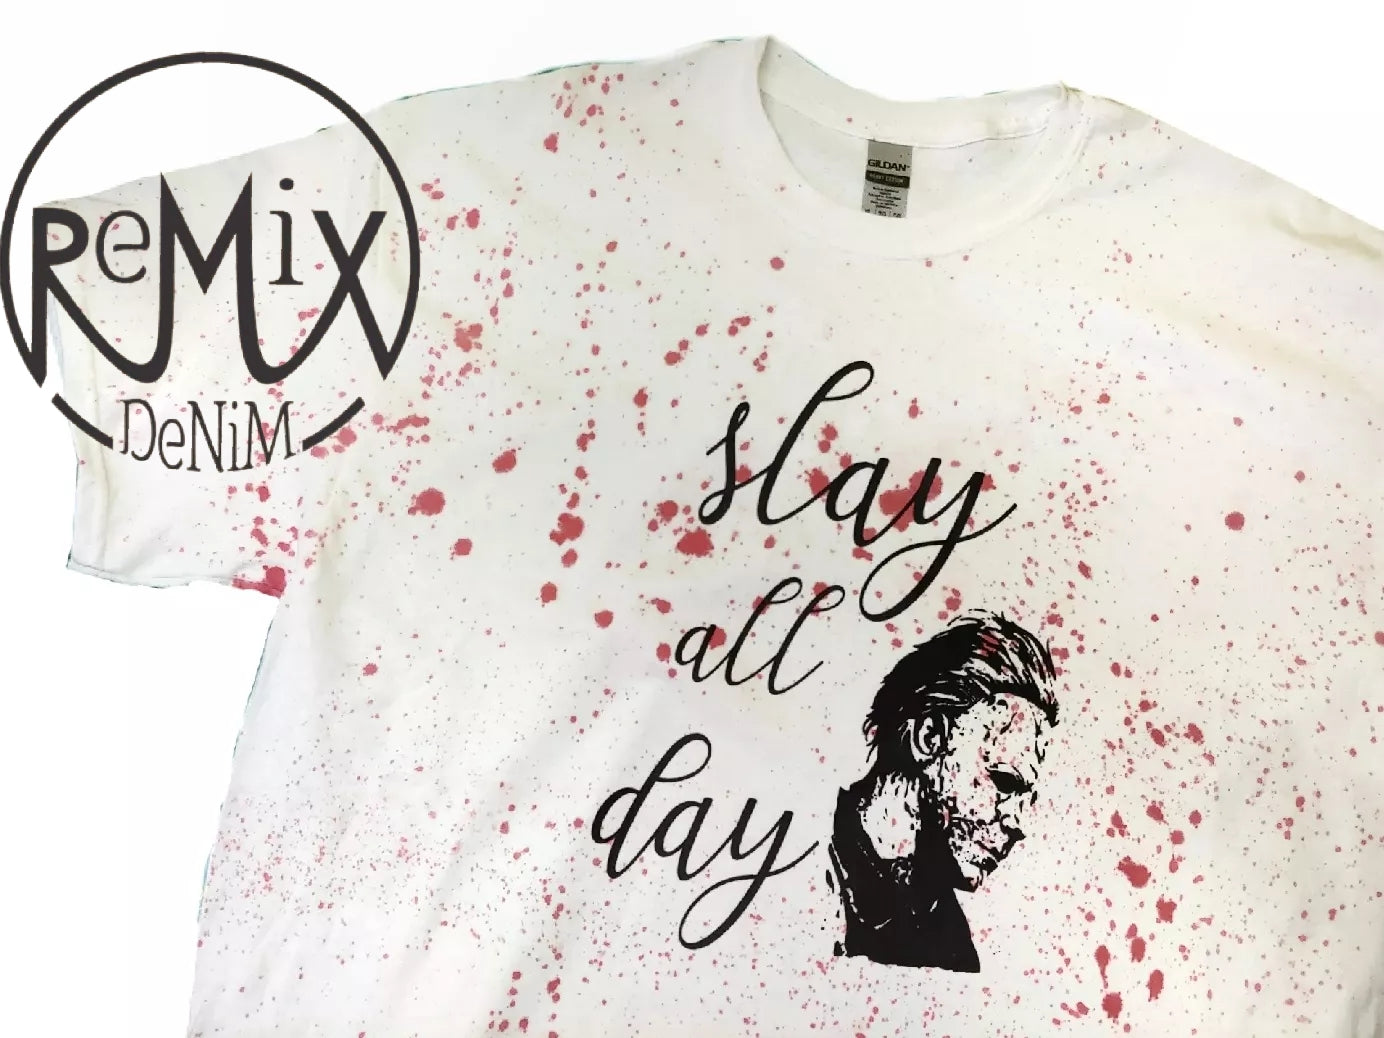 Slay All Day Splatter Tshirt